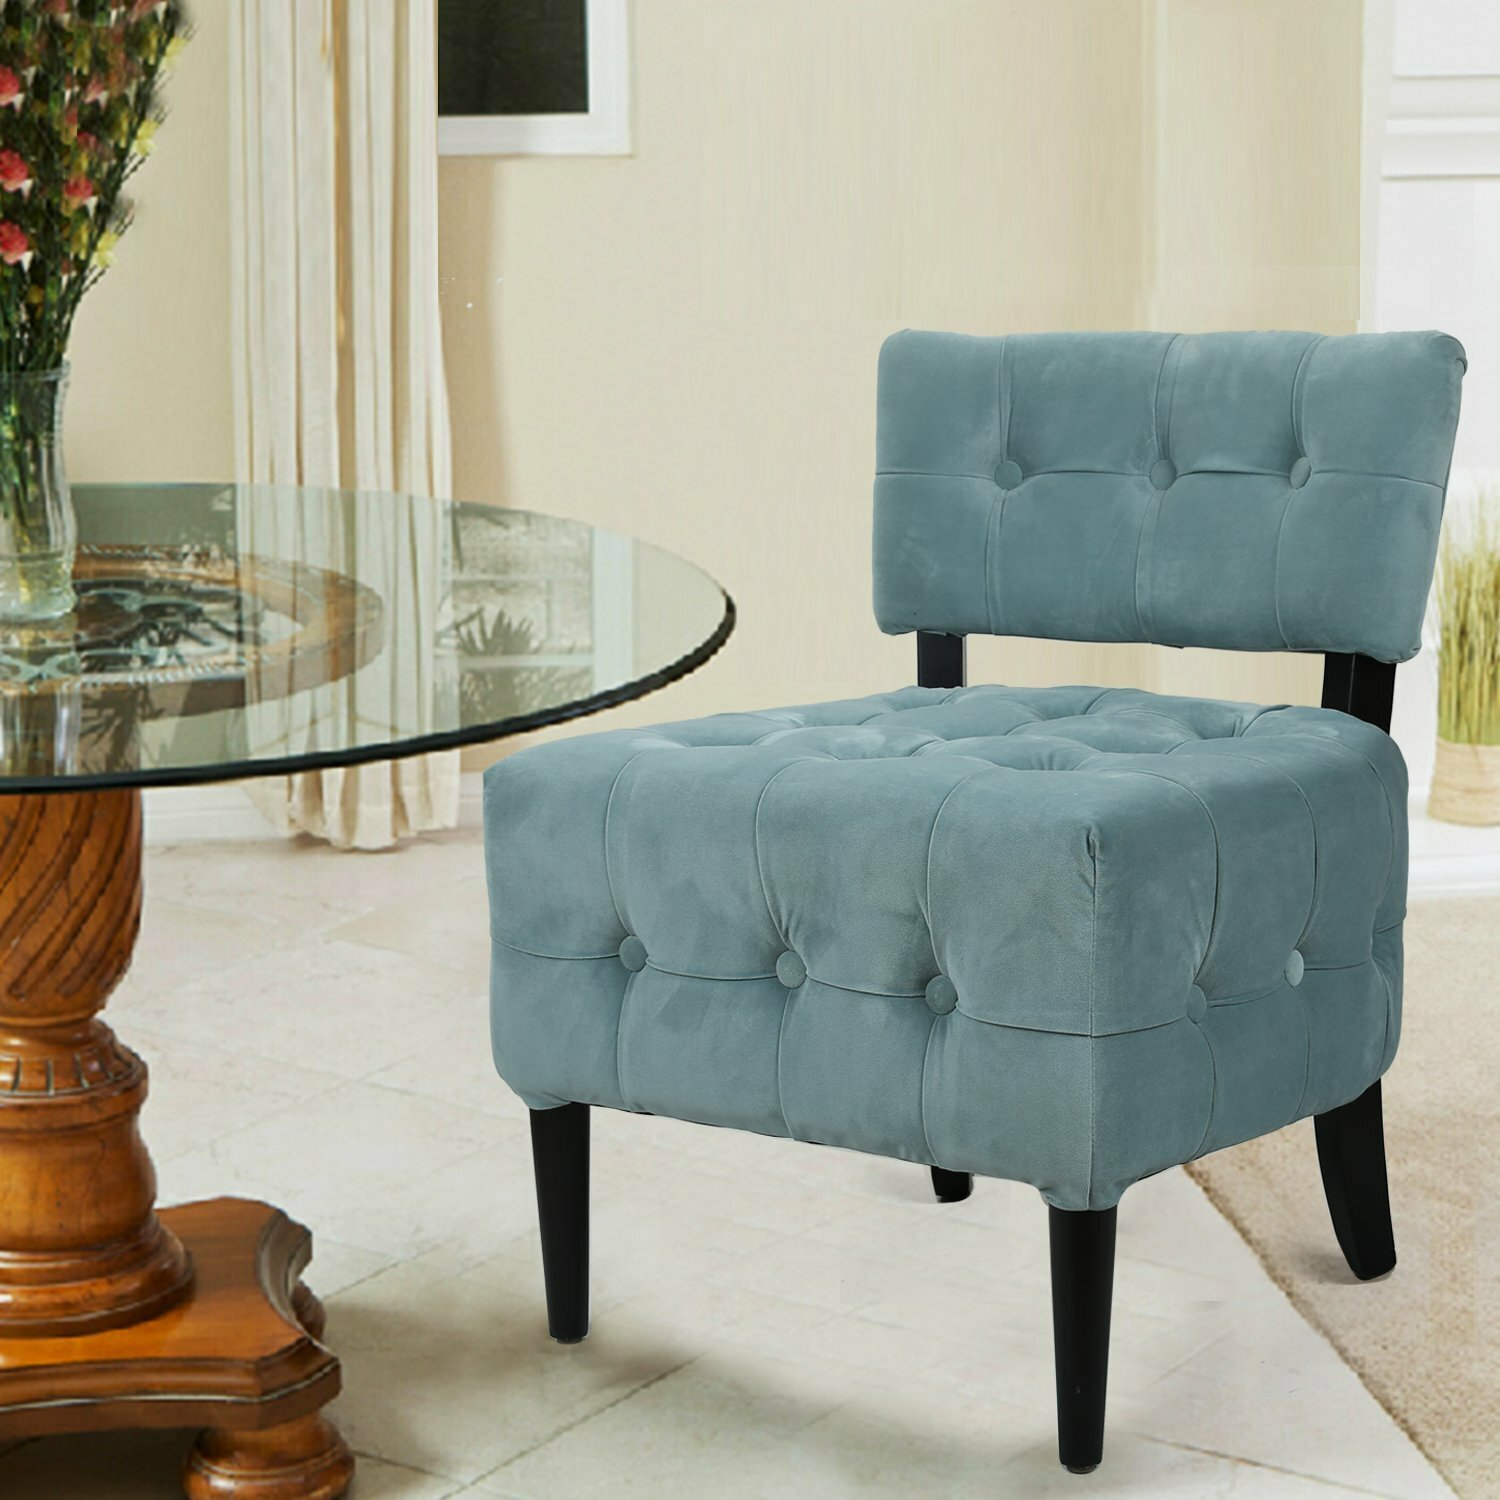 Adecotrading single living room side chair wayfair for Living room single chairs